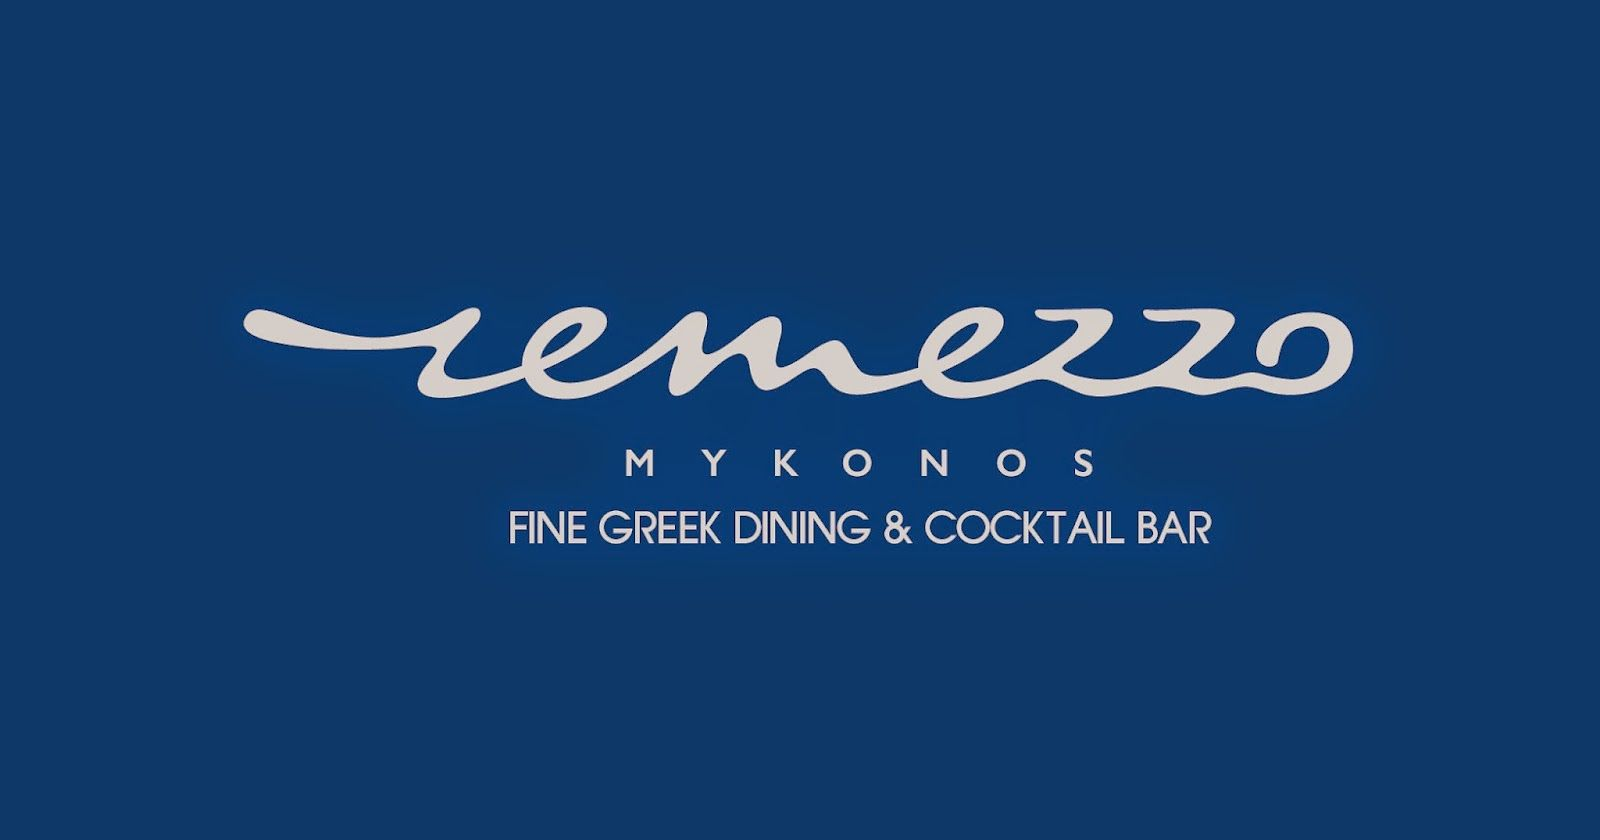 , Opening for Fine Greek Dining & Cocktail Bar Remezzo Mykonos